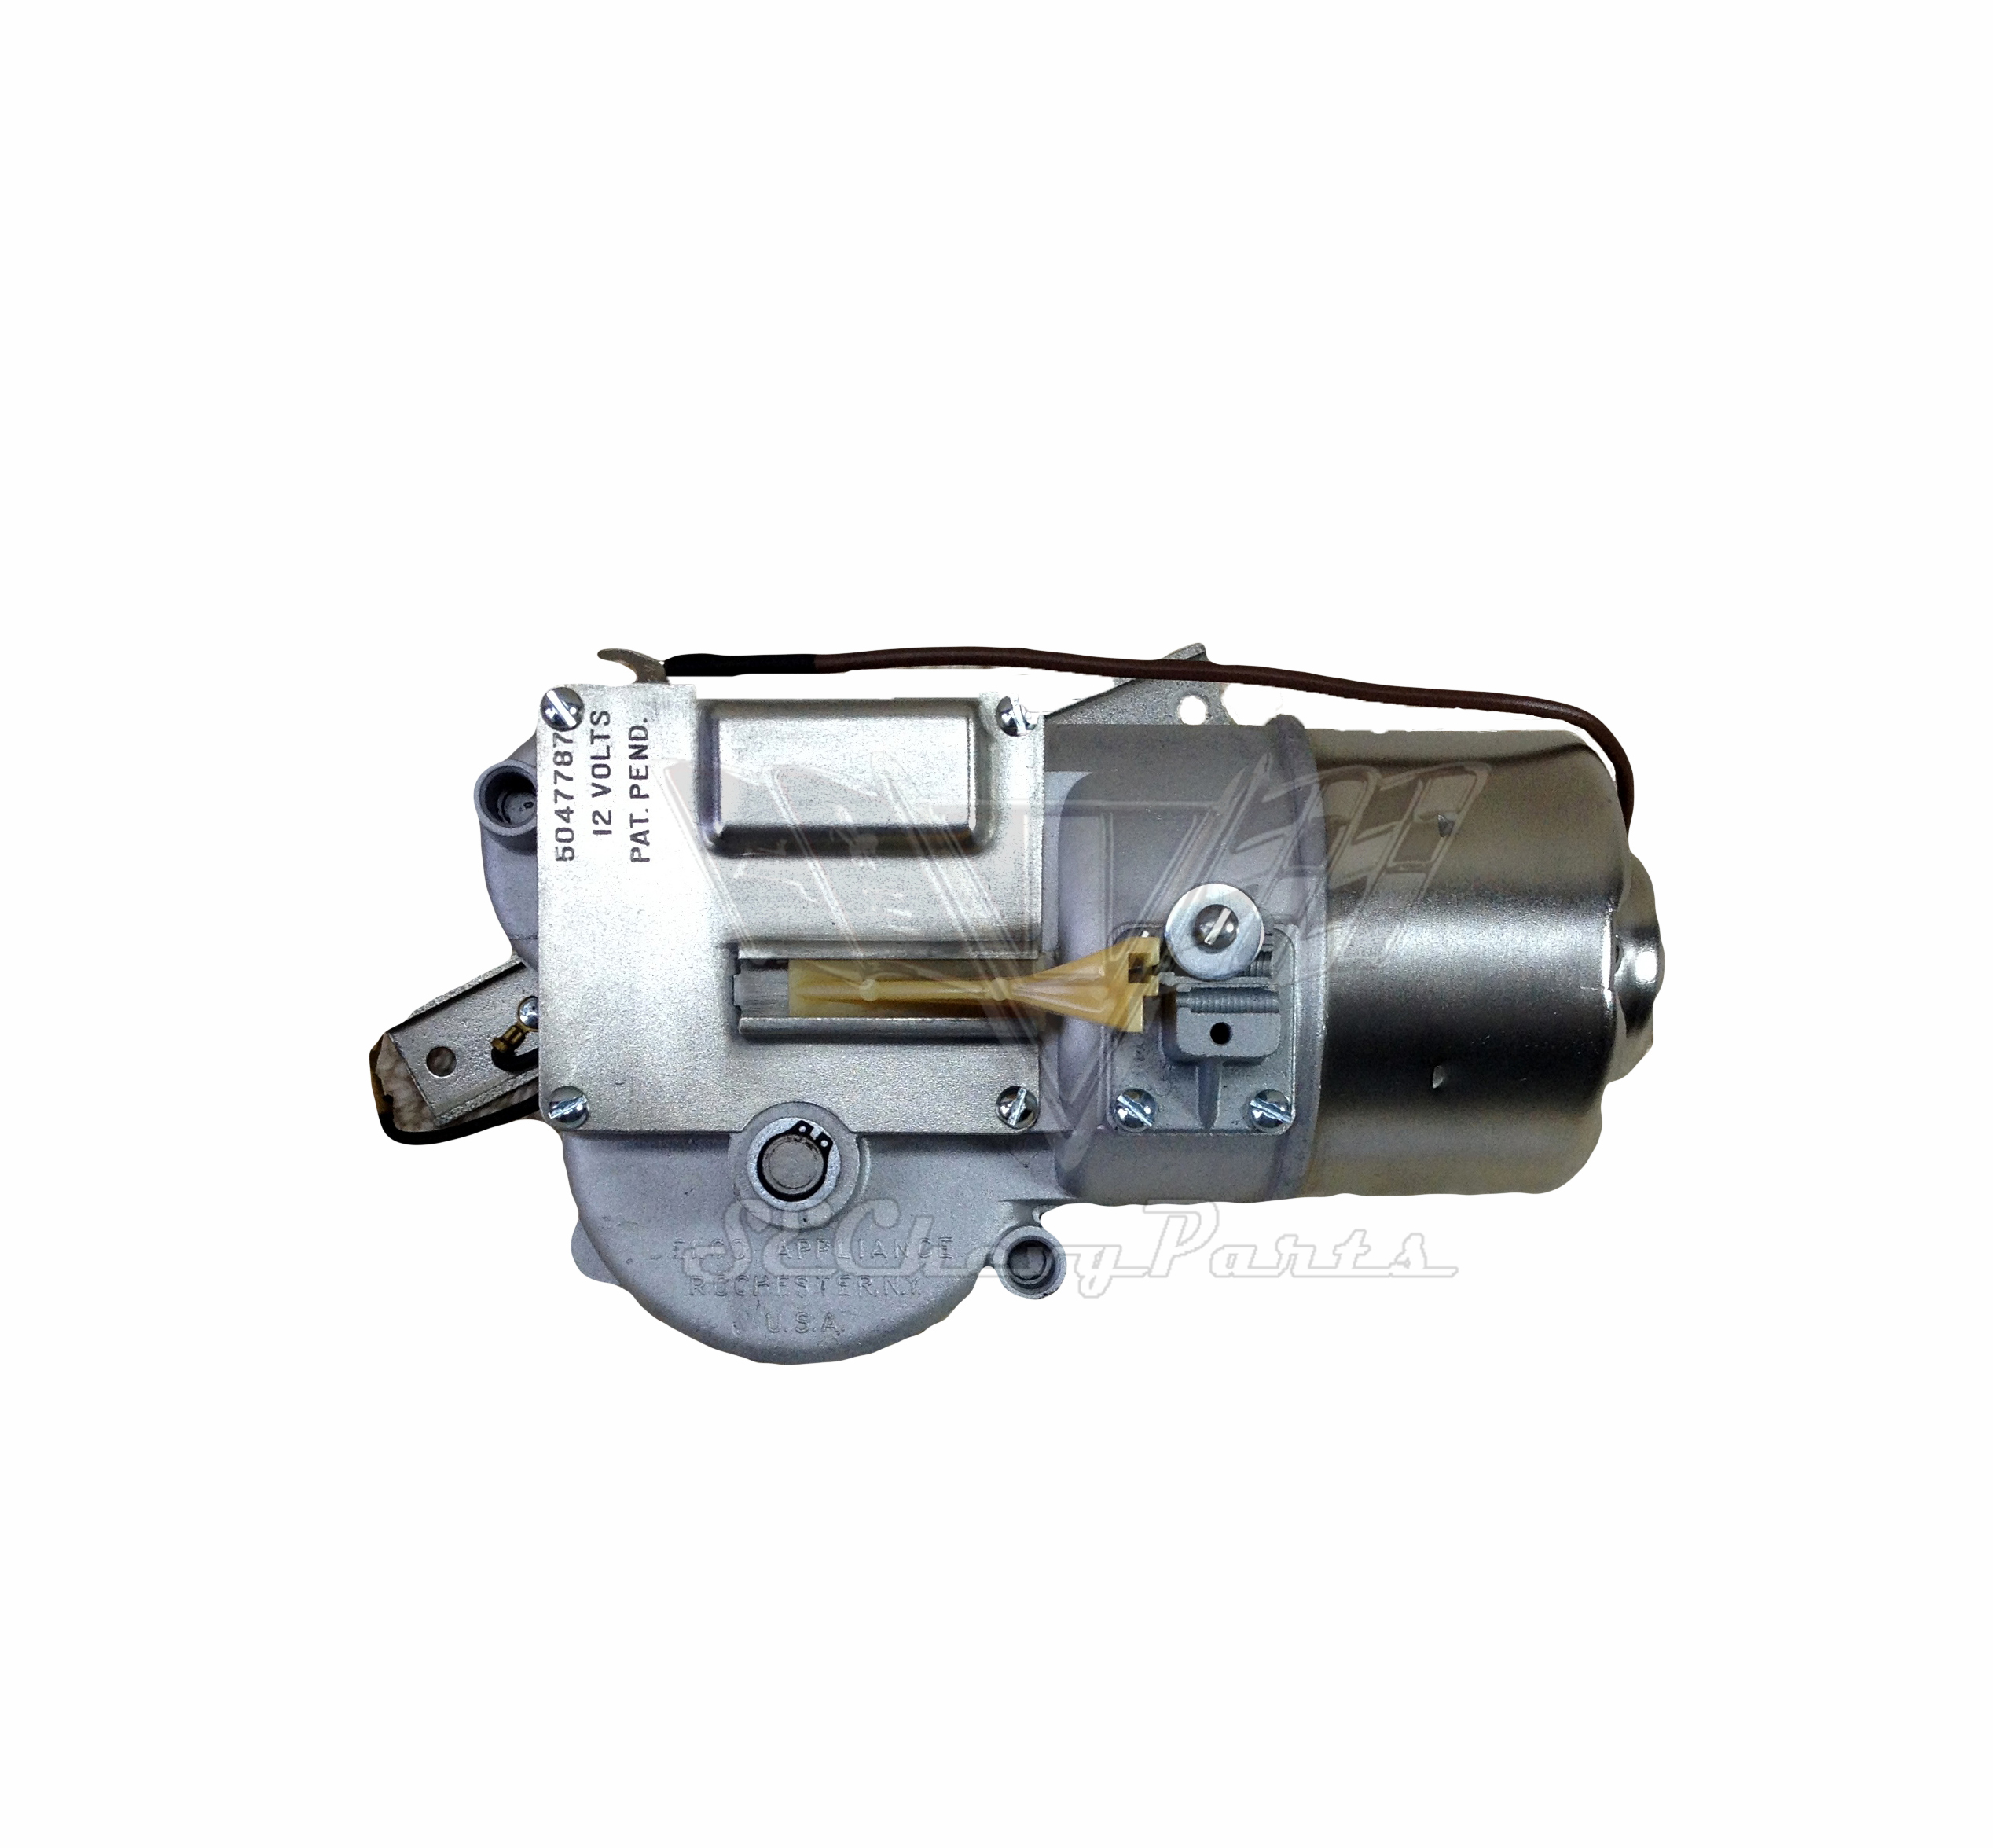 Windshield Wiper Motor >> 1955 Chevy 2 Speed Electric Windshield Wiper Motor Remanufactured